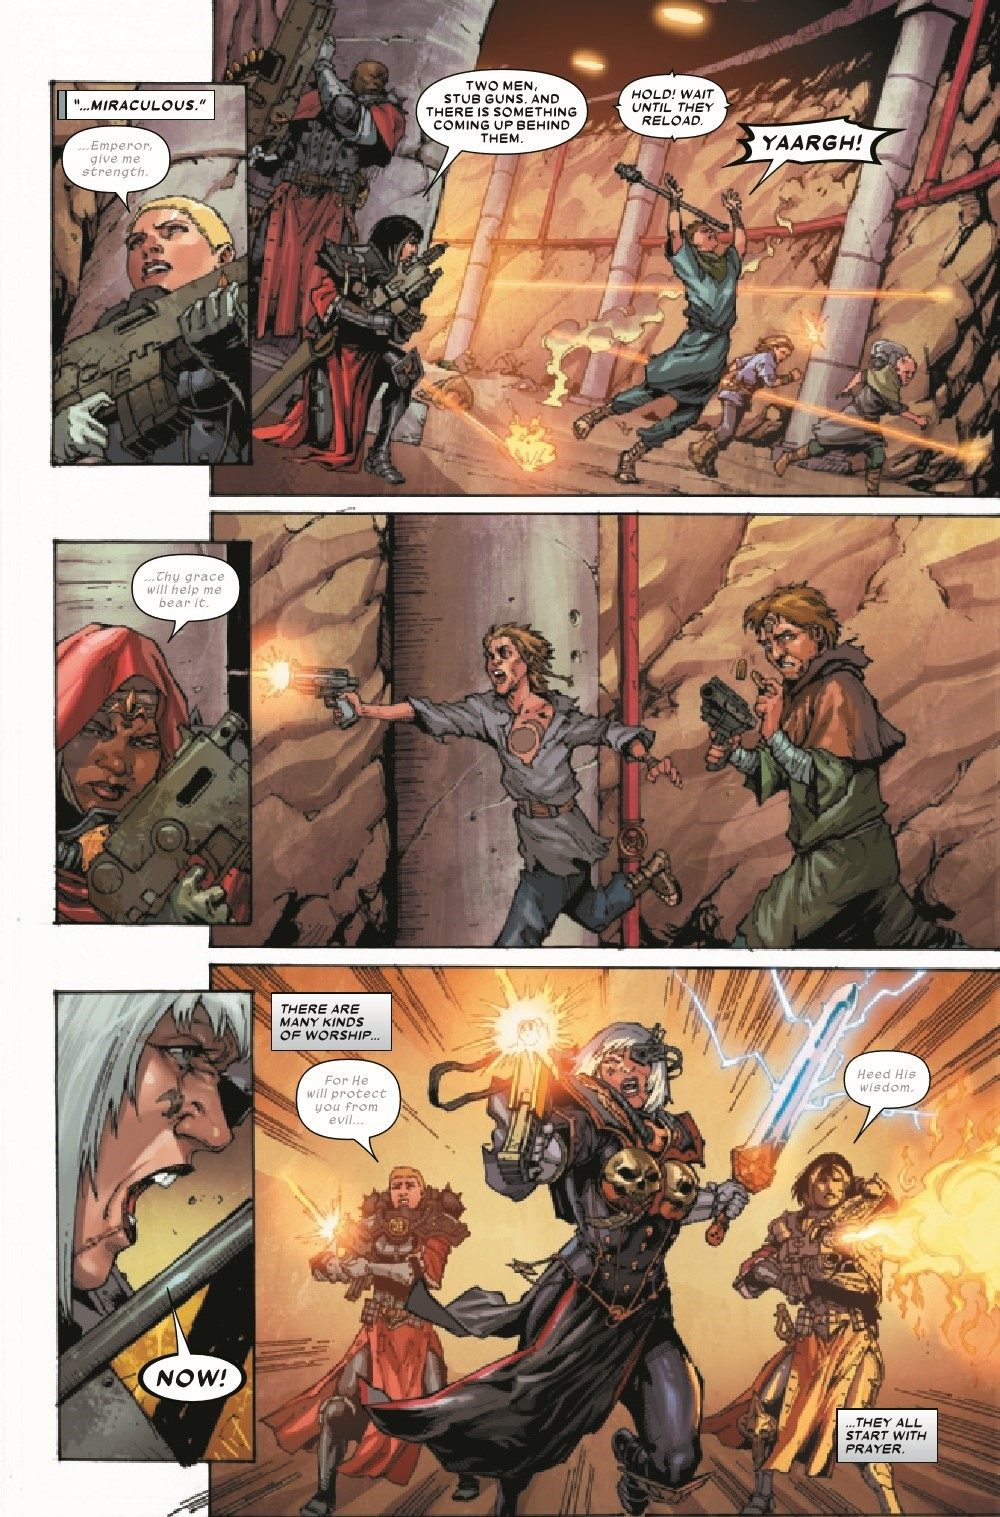 WARHAMMERSOB2021001_Preview-5 ComicList Previews: WARHAMMER 40000 SISTERS OF BATTLE #1 (OF 5)